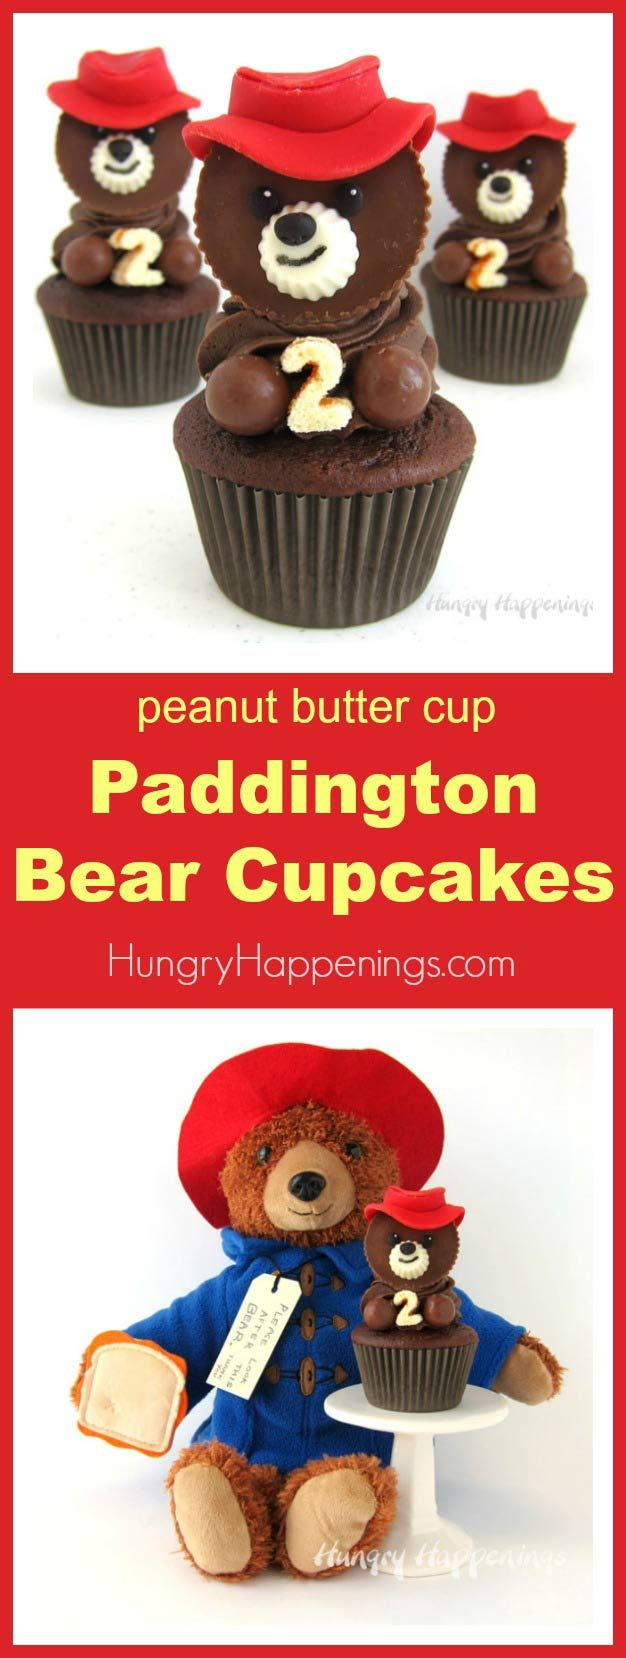 Kids of all ages will fall in love with these Paddington Bear Cupcakes. Each chocolate cupcake, made to celebrate the release of Paddington 2, is topped with a swirl of chocolate frosting and is adorned with a peanut butter cup bear wearing a bright red candy hat. #Paddington2 #ad